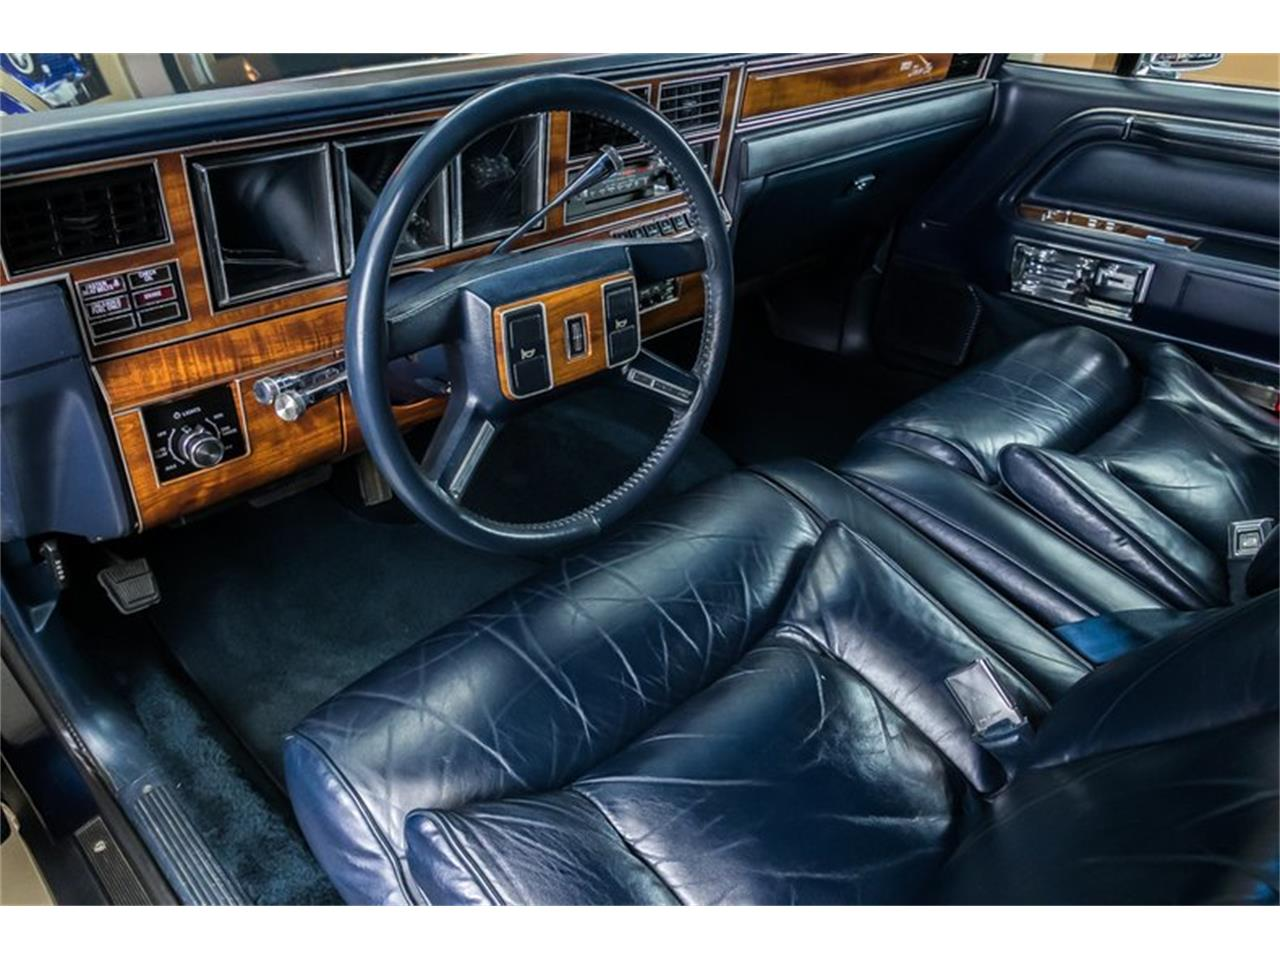 Large Picture of 1989 Town Car located in Michigan - $28,900.00 Offered by Vanguard Motor Sales - OYYG